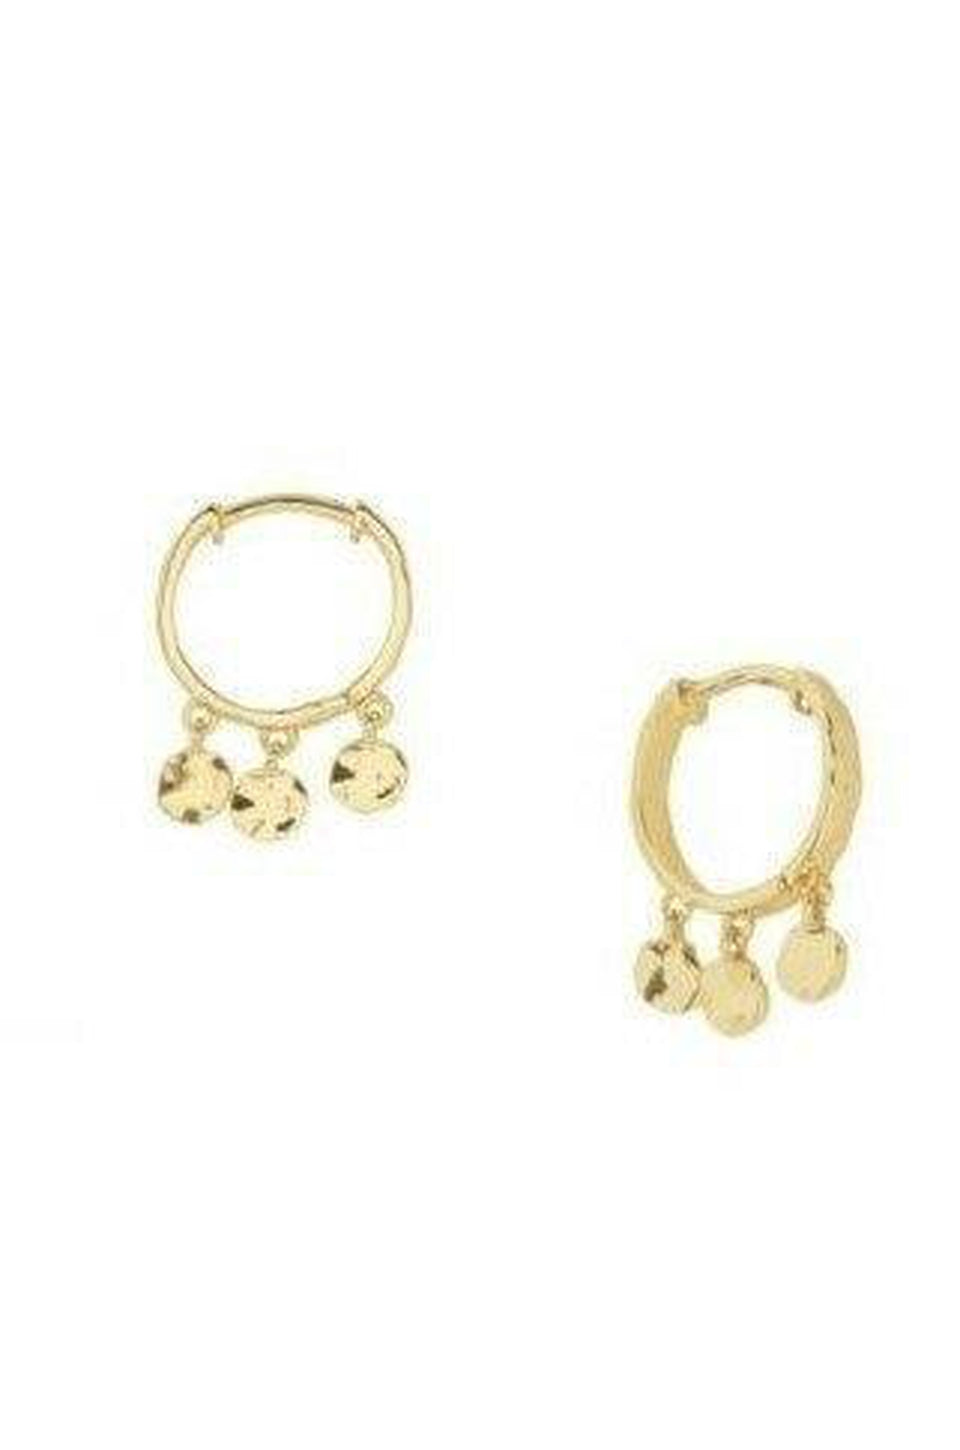 Gorjana Chloe Mini Gold Huggie Earrings